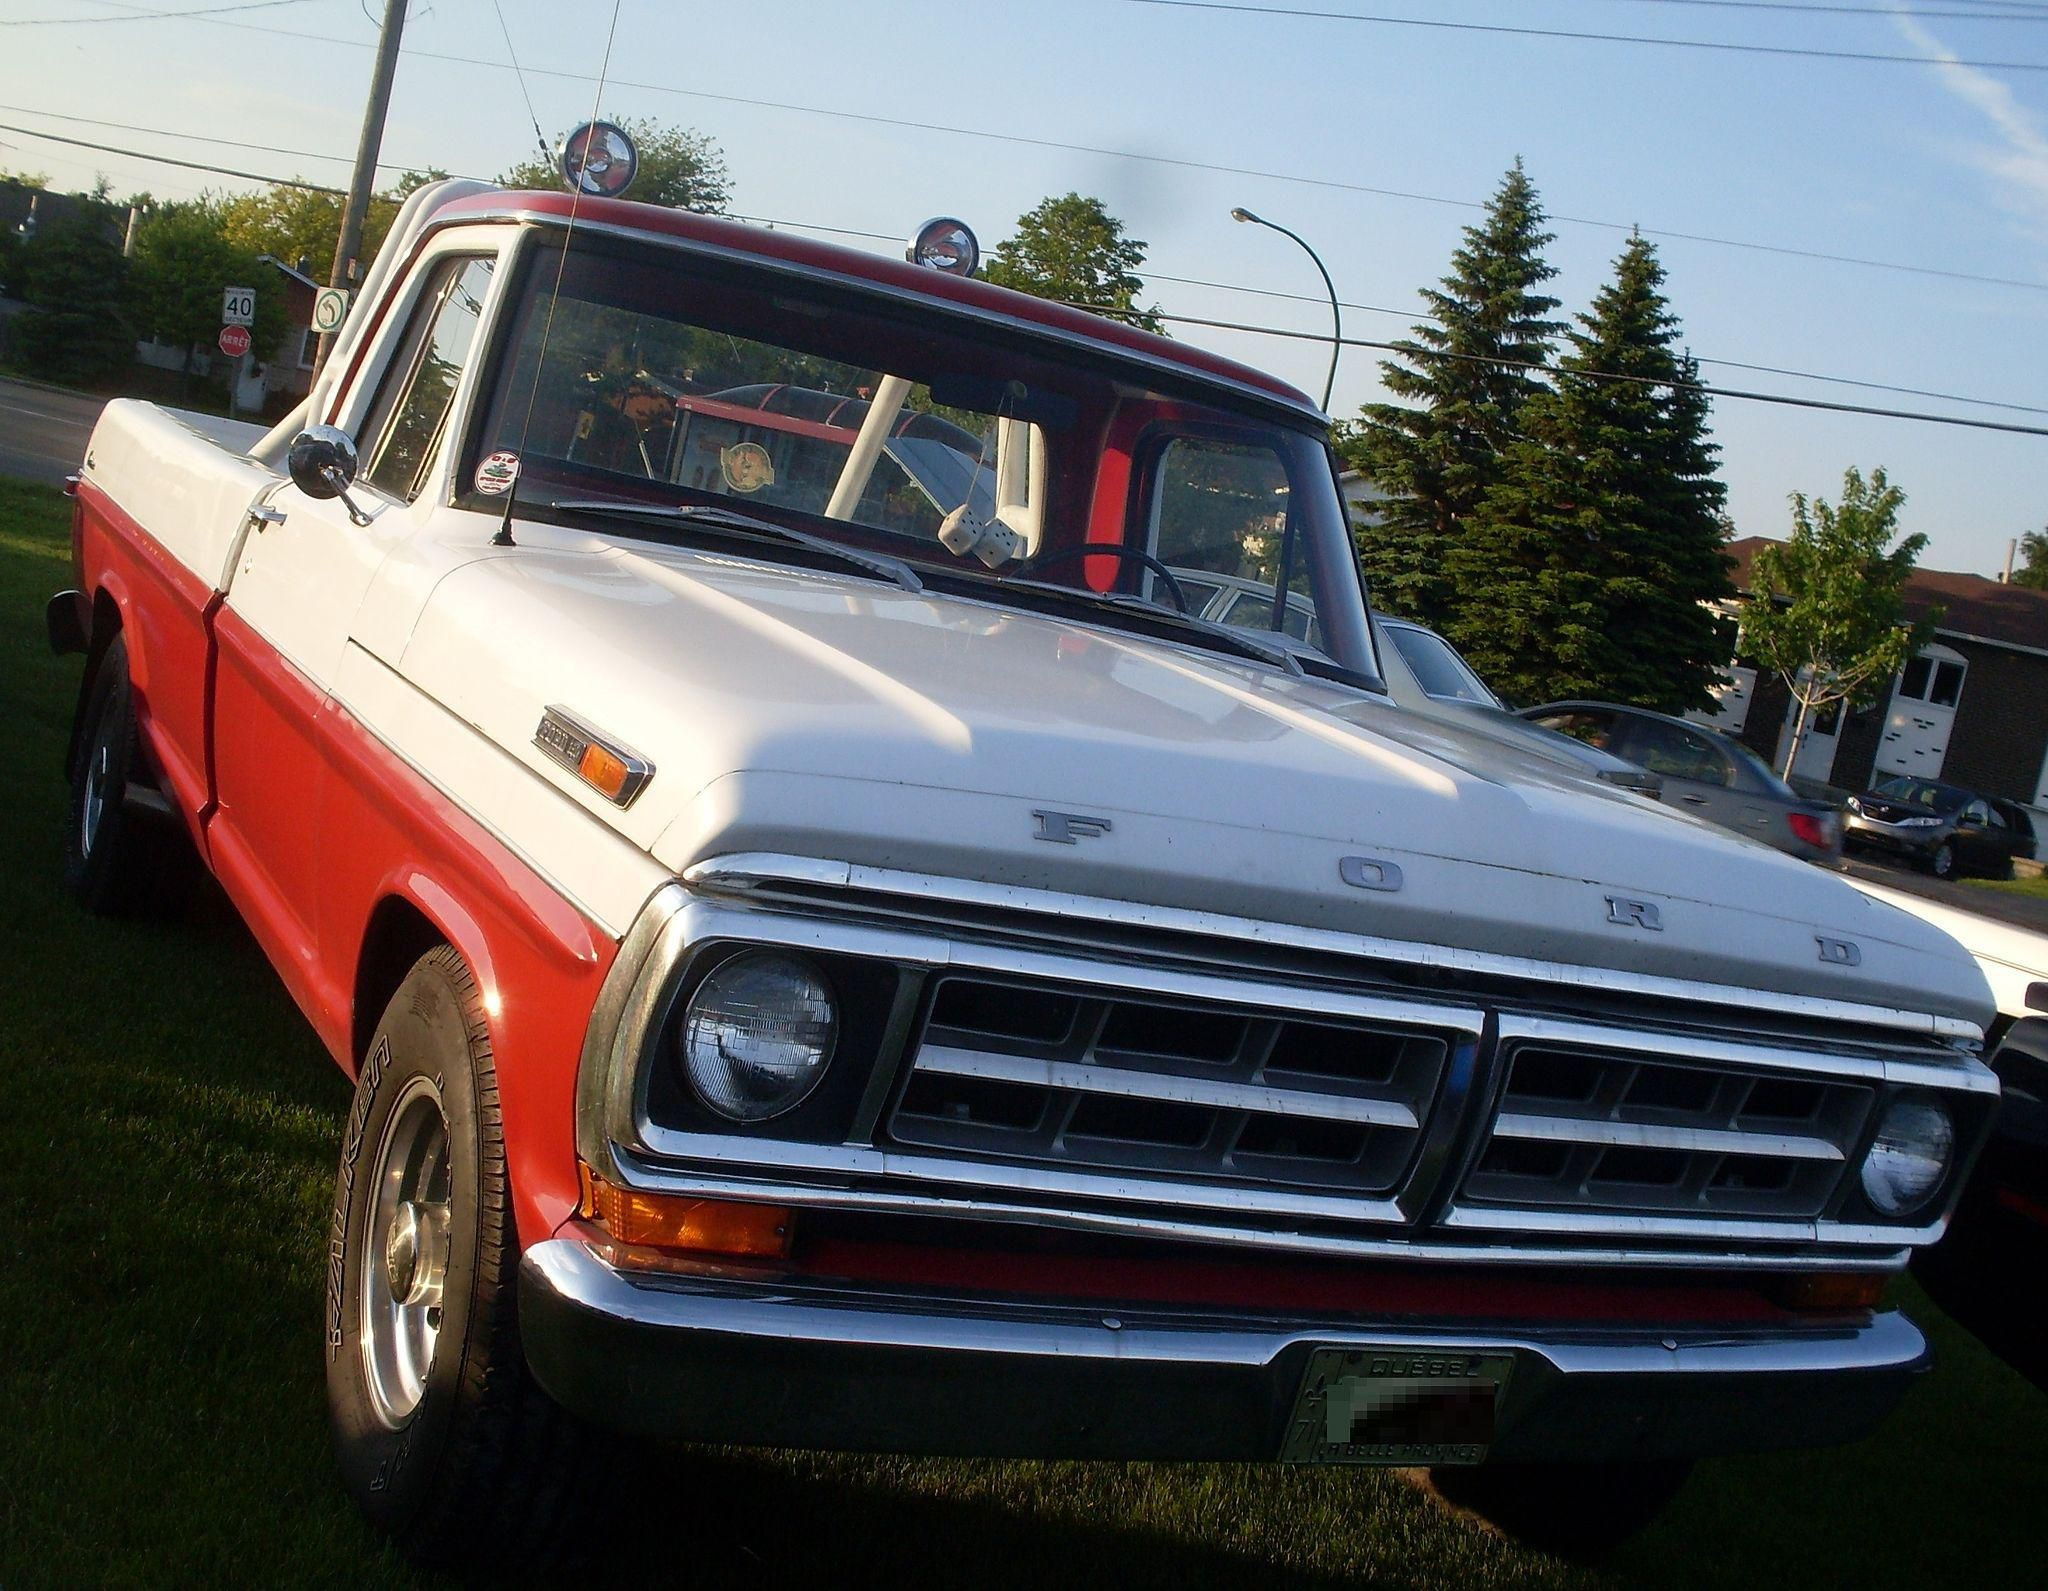 1997 ford F150 4 6 Engine Diagram 2 ford F Series Pickup Truck History From 1973 1979 Of 1997 ford F150 4 6 Engine Diagram 2